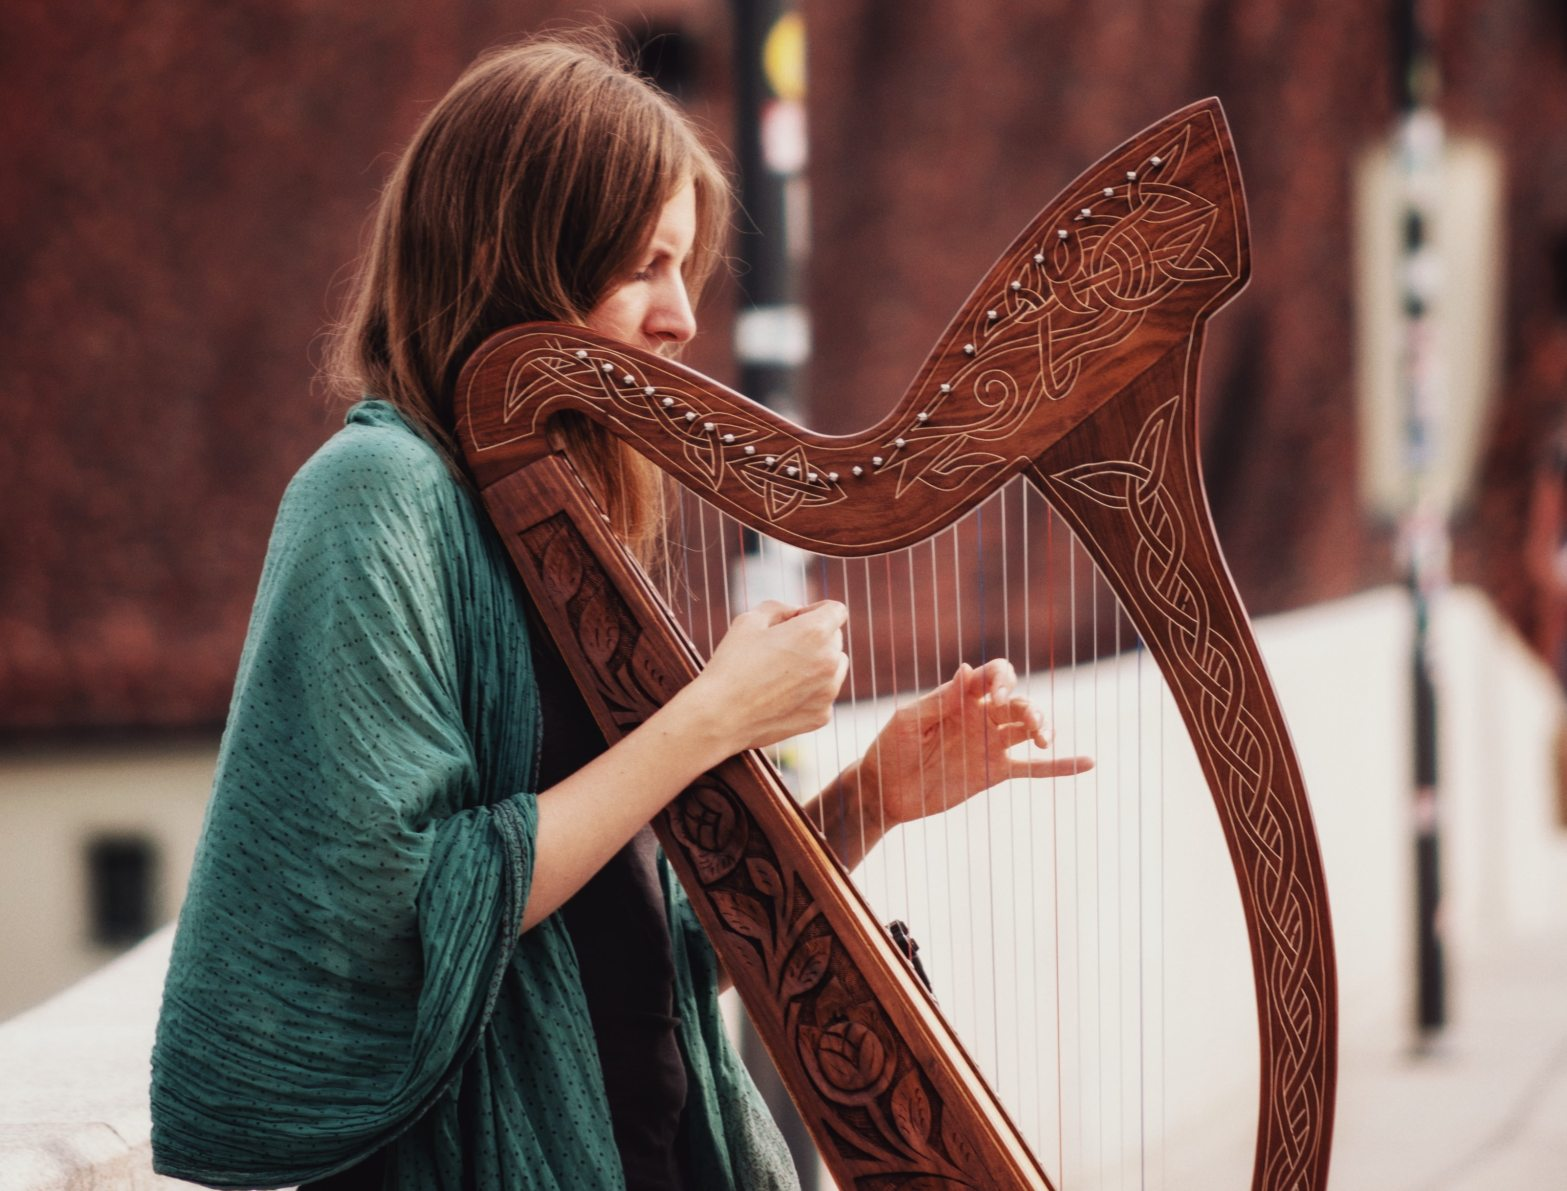 photo of woman playing Celtic harp